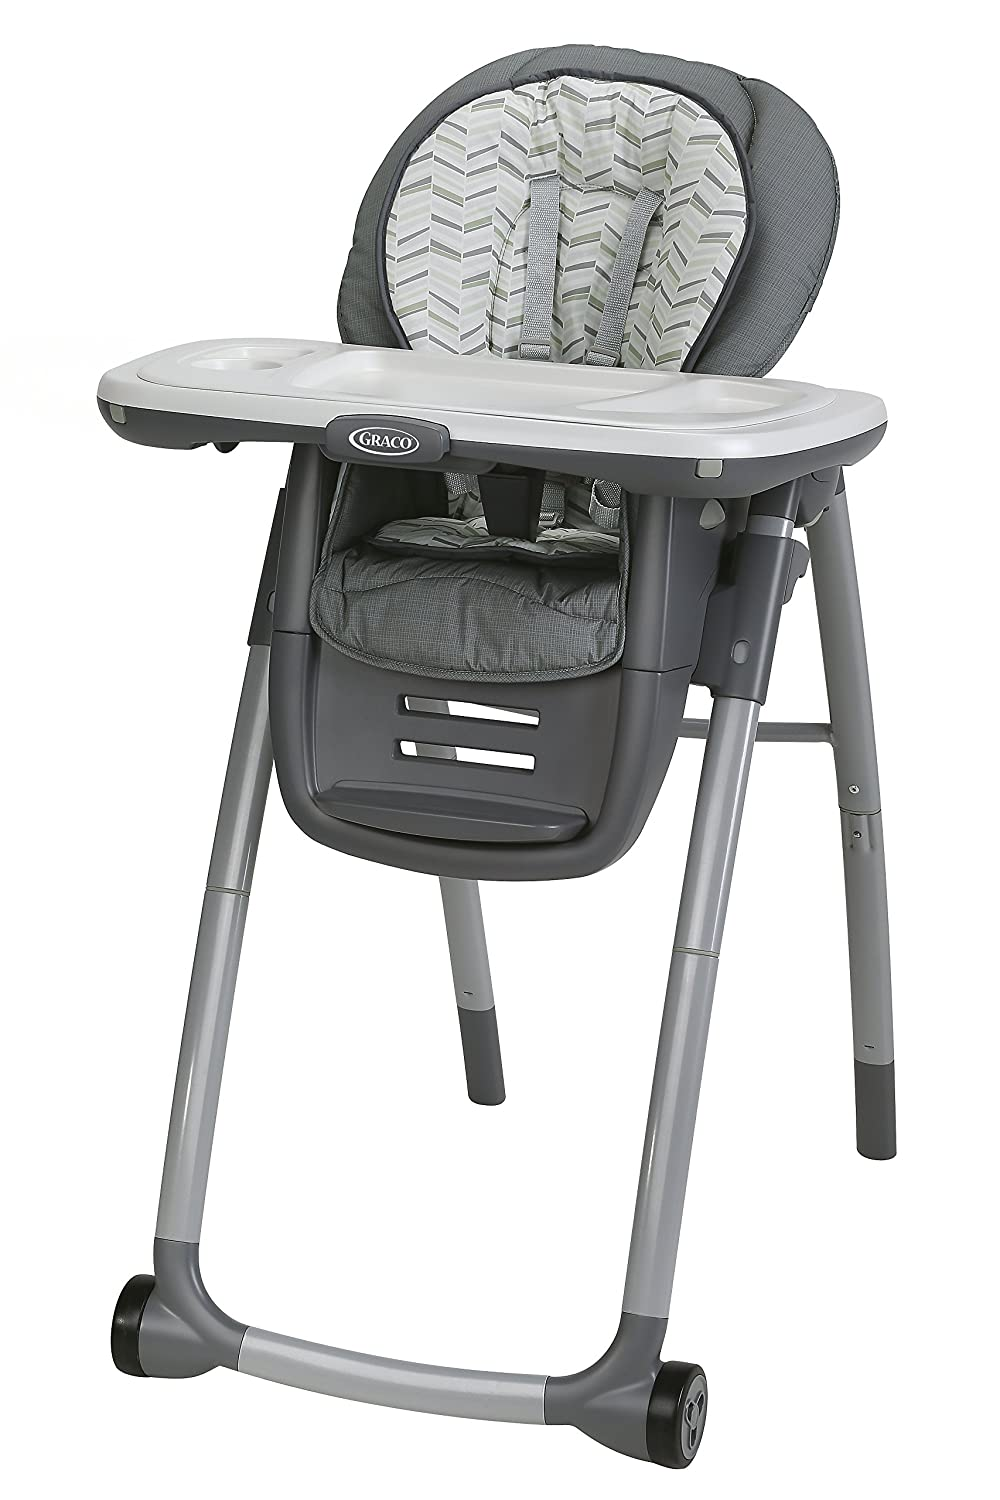 Graco Table2 Table Premier Fold 7 In 1 Convertible High Chair, Landry, One Size by Graco